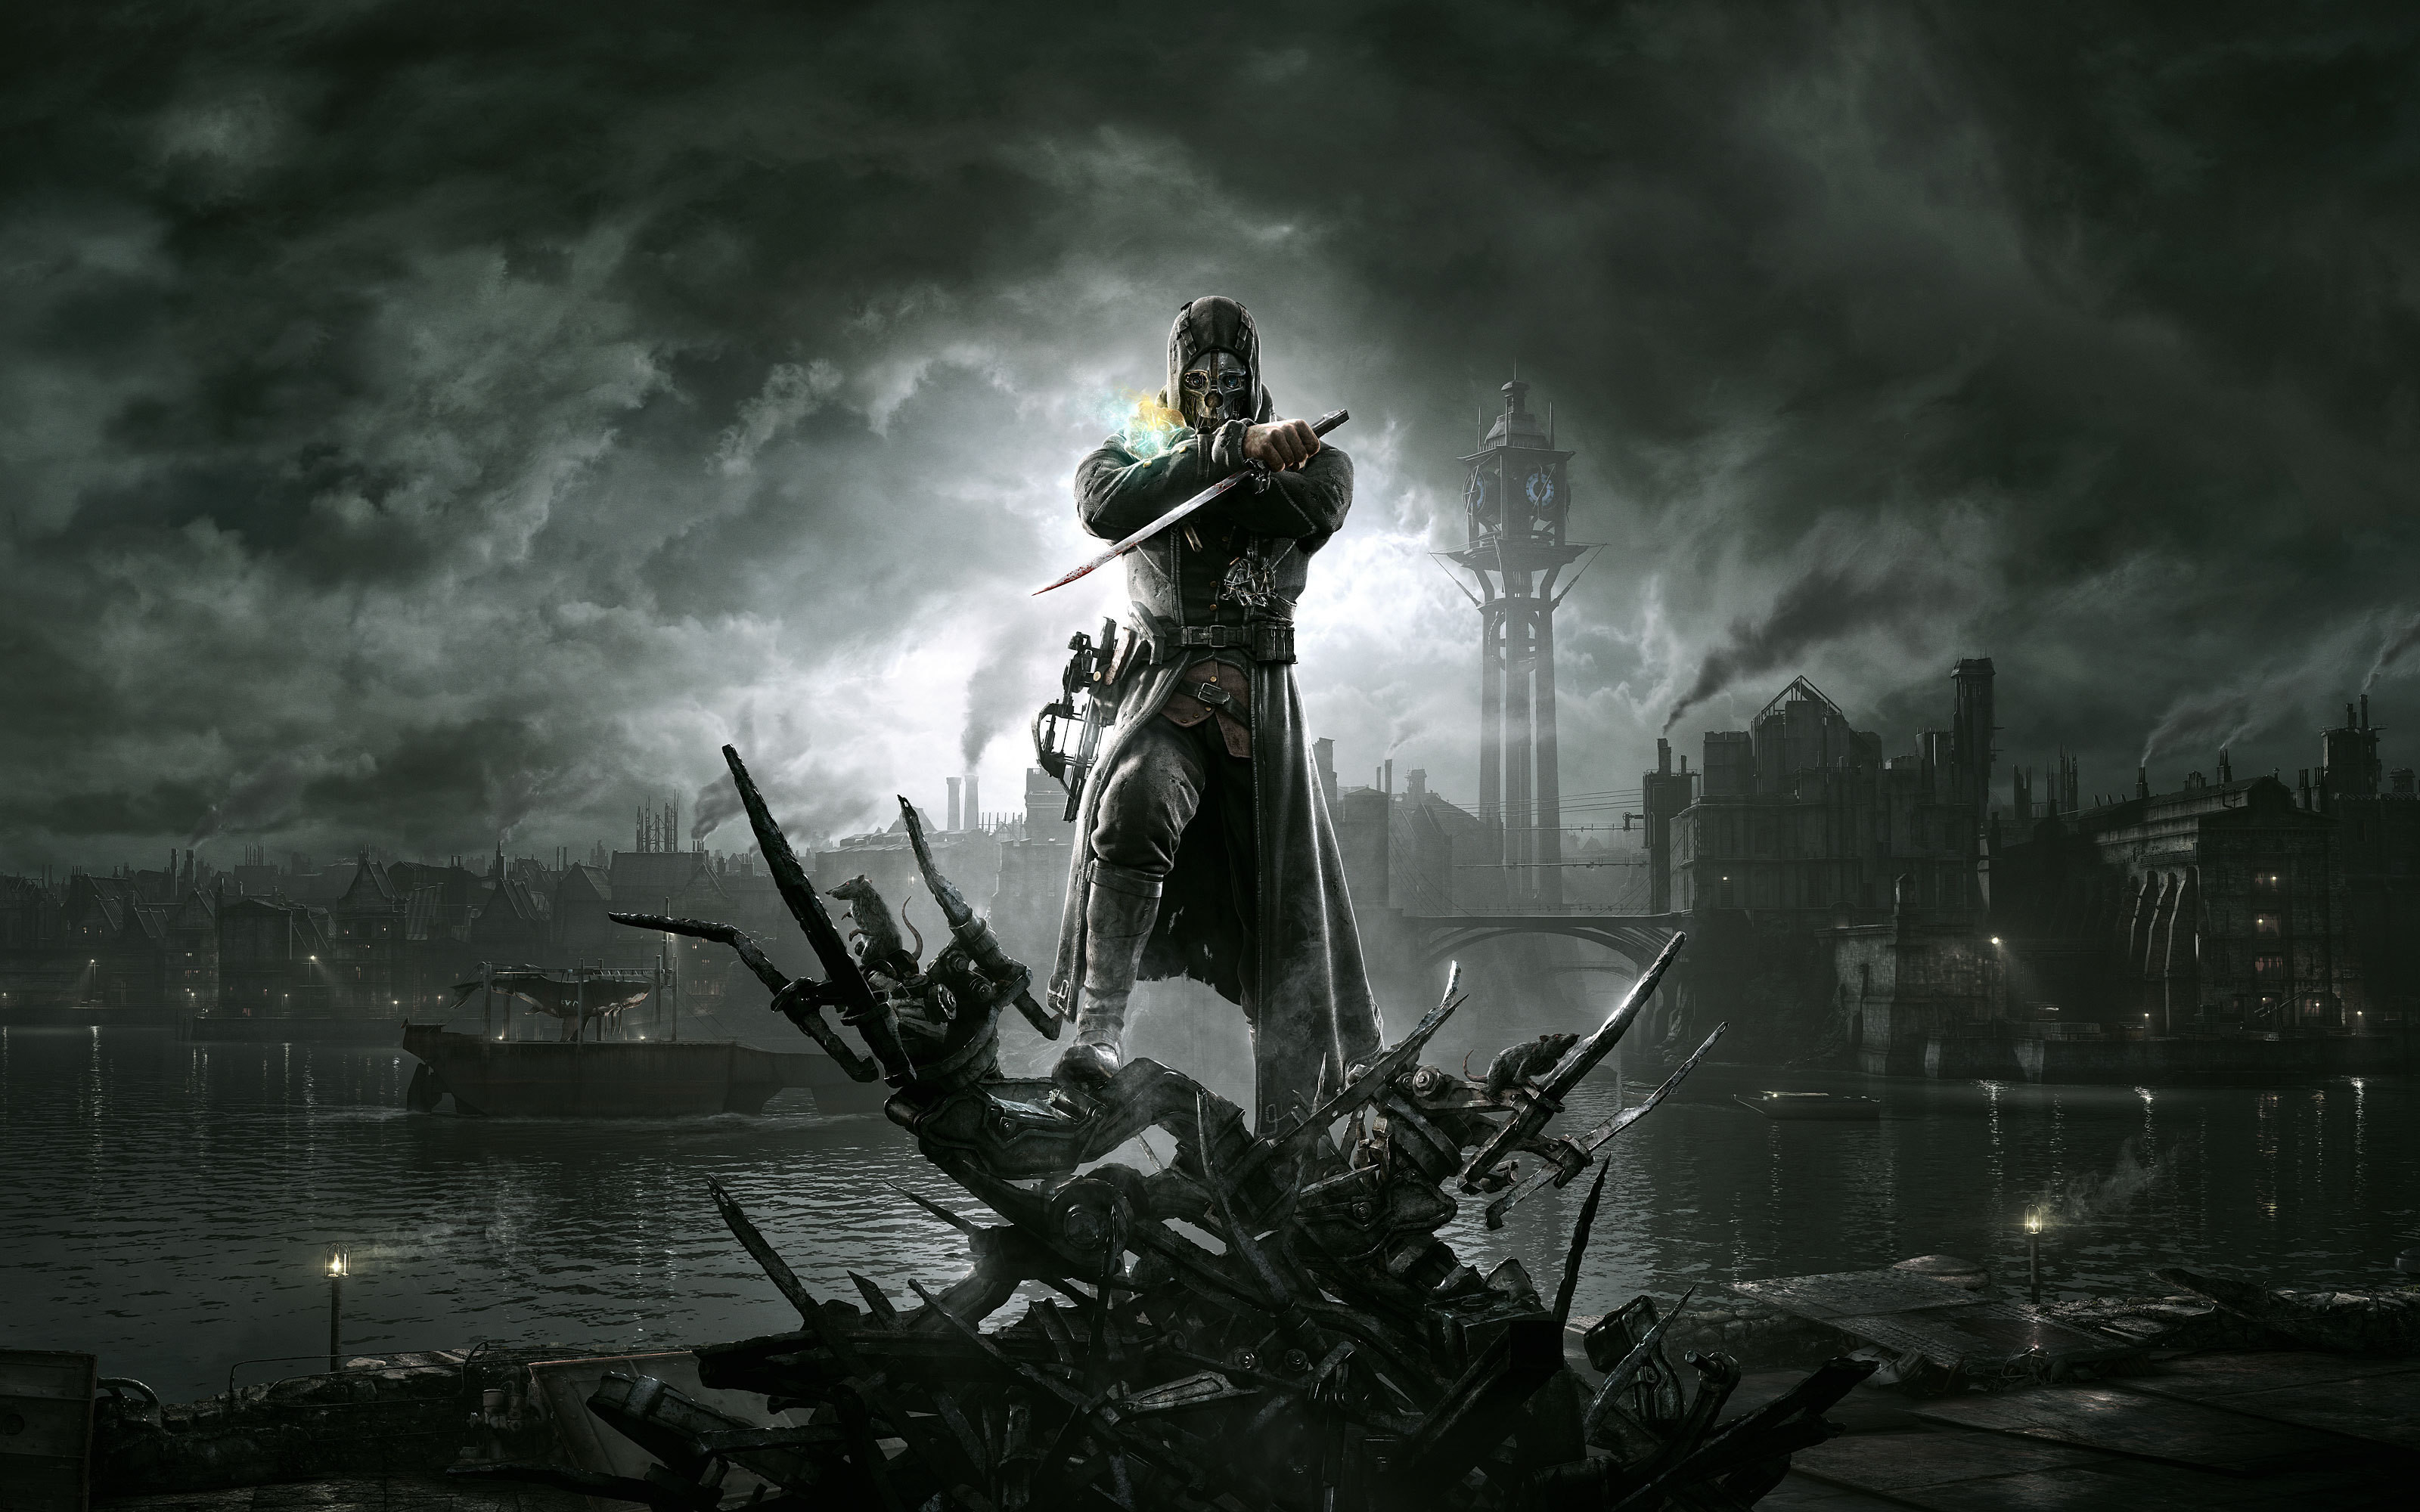 3200x2000 78 Dishonored HD Wallpapers | Backgrounds - Wallpaper Abyss